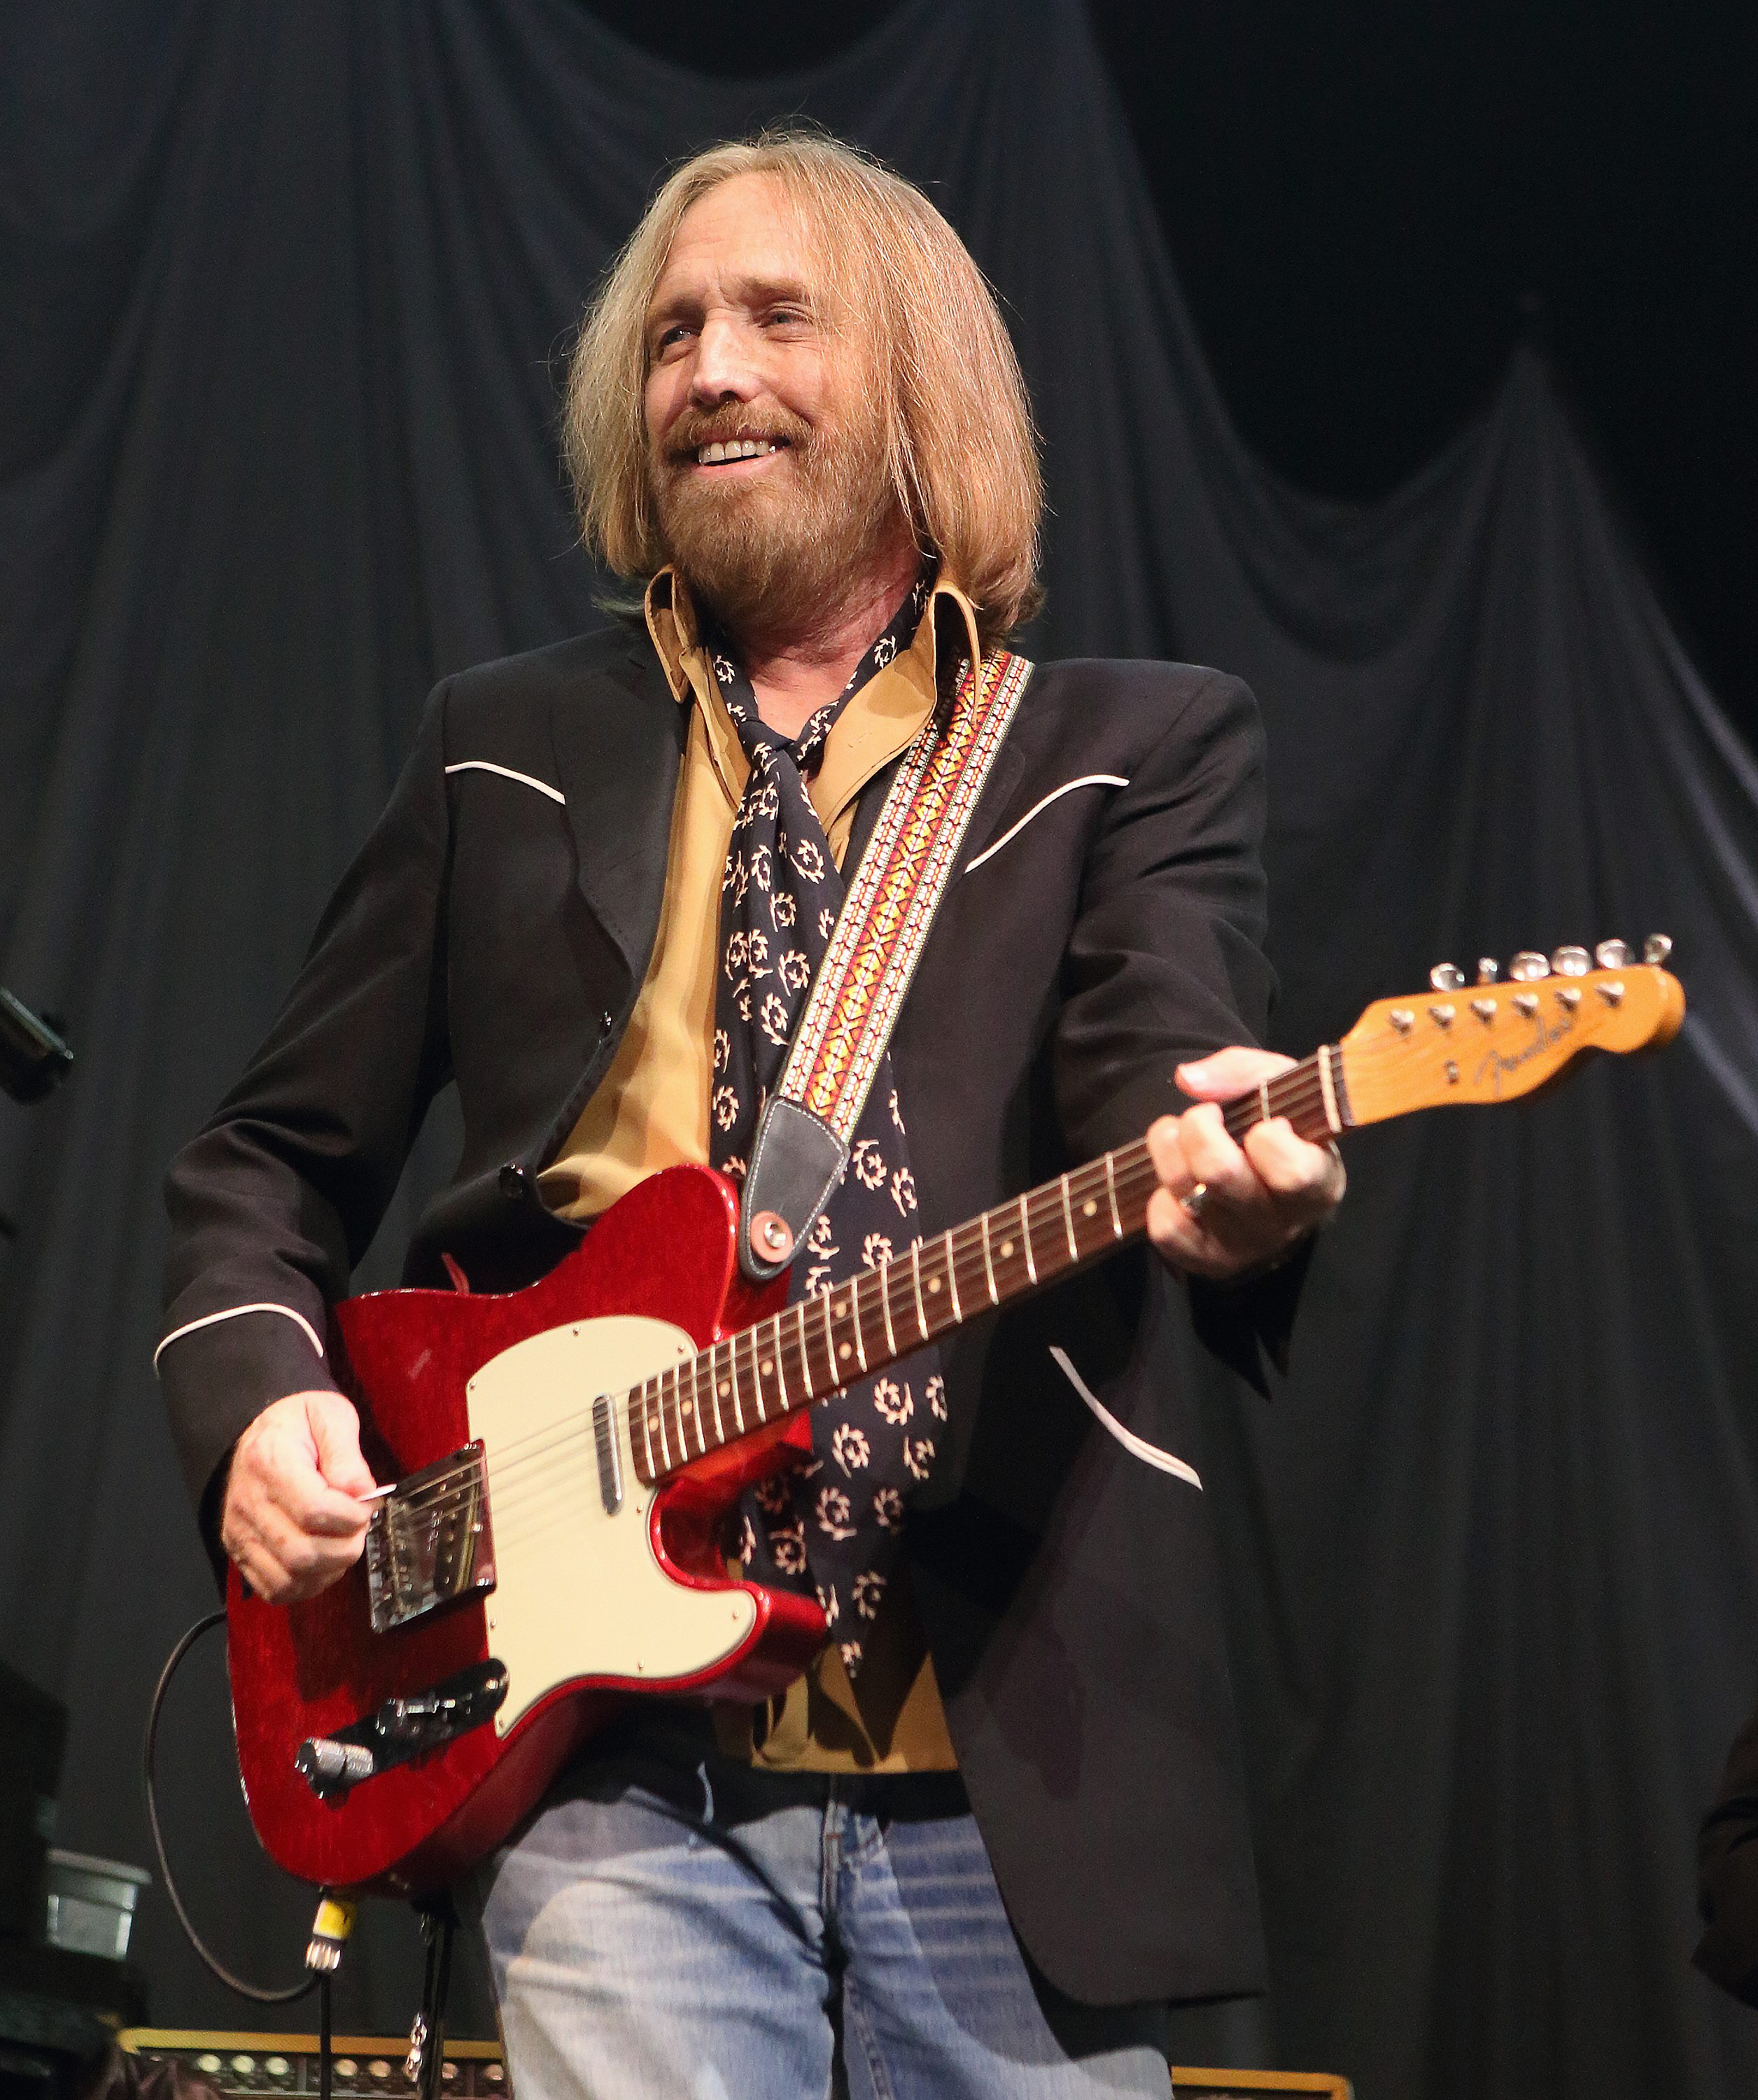 tom petty refugee переводtom petty and the heartbreakers, tom petty скачать, tom petty learning to fly, tom petty free fallin, tom petty i won't back down, tom petty it's good to be king, tom petty discography, tom petty american girl перевод, tom petty refugee, tom petty hypnotic eye, tom petty saving grace, tom petty wiki, tom petty wildflowers перевод, tom petty and the heartbreakers скачать, tom petty refugee перевод, tom petty last dj, tom petty & the heartbreakers american girl, tom petty face in the crowd, tom petty karaoke, tom petty american girl lyrics